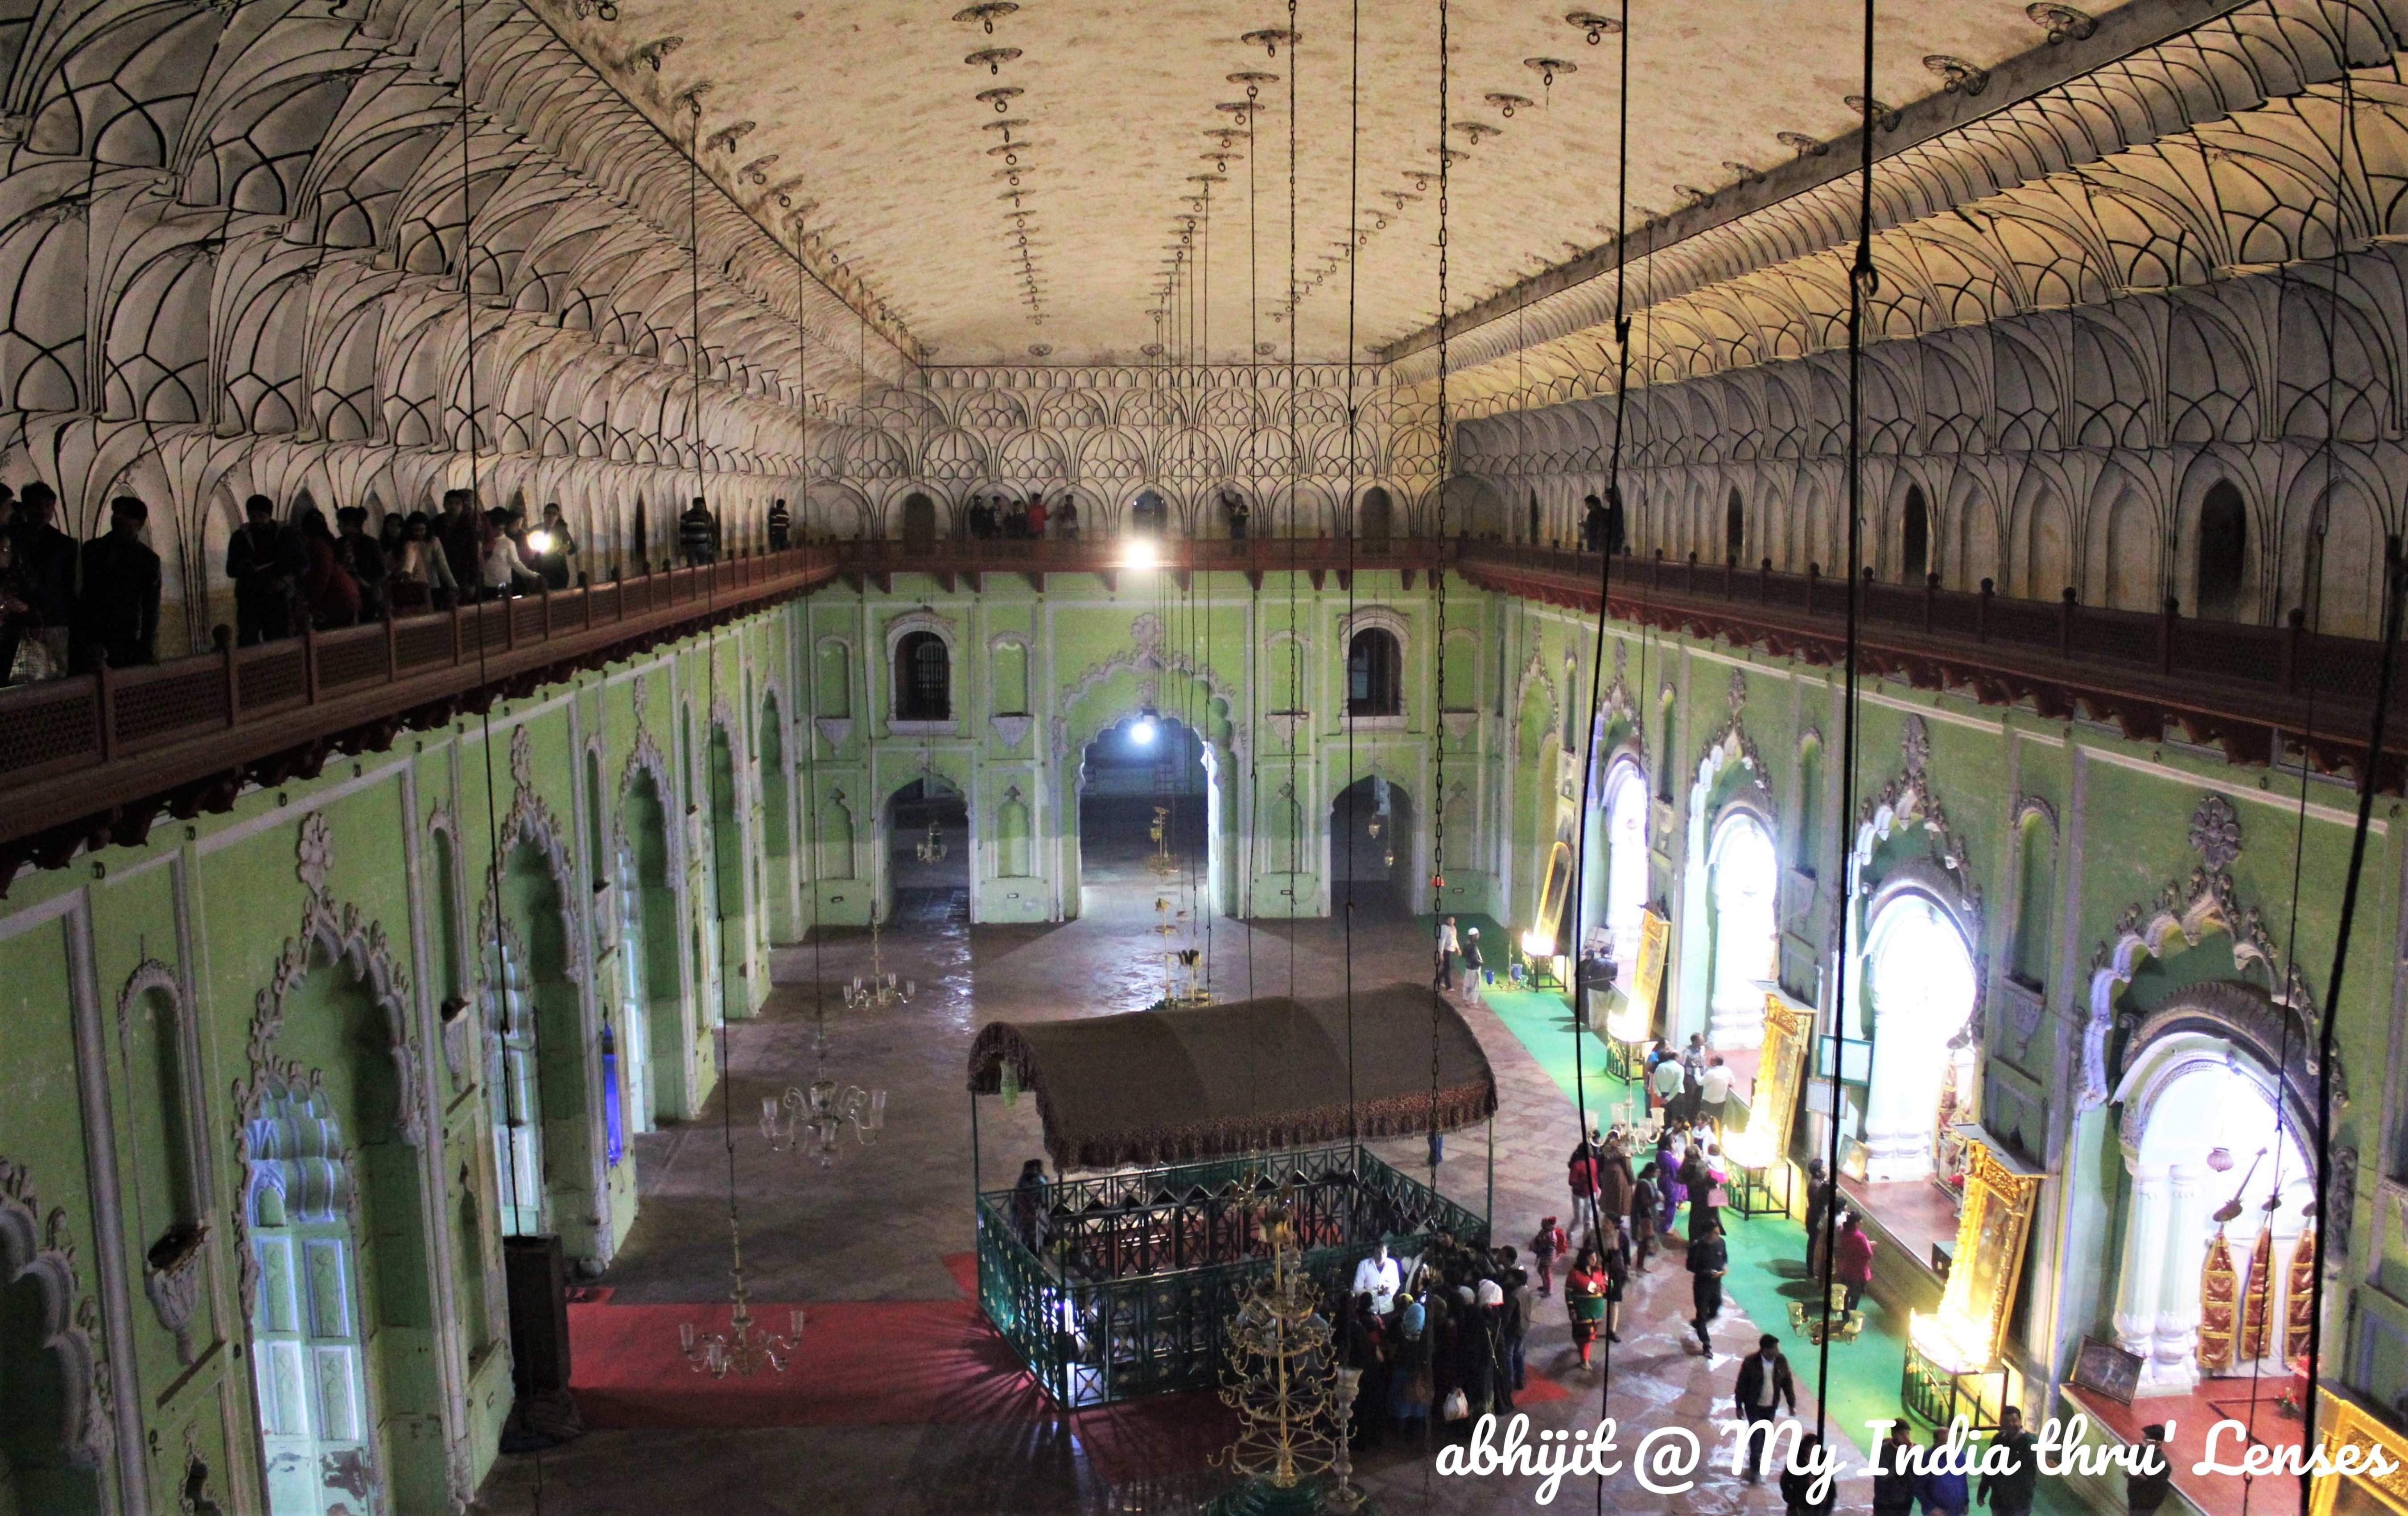 The Central Hall inside  Main Building with the tomb of Asaf-ud-daulah